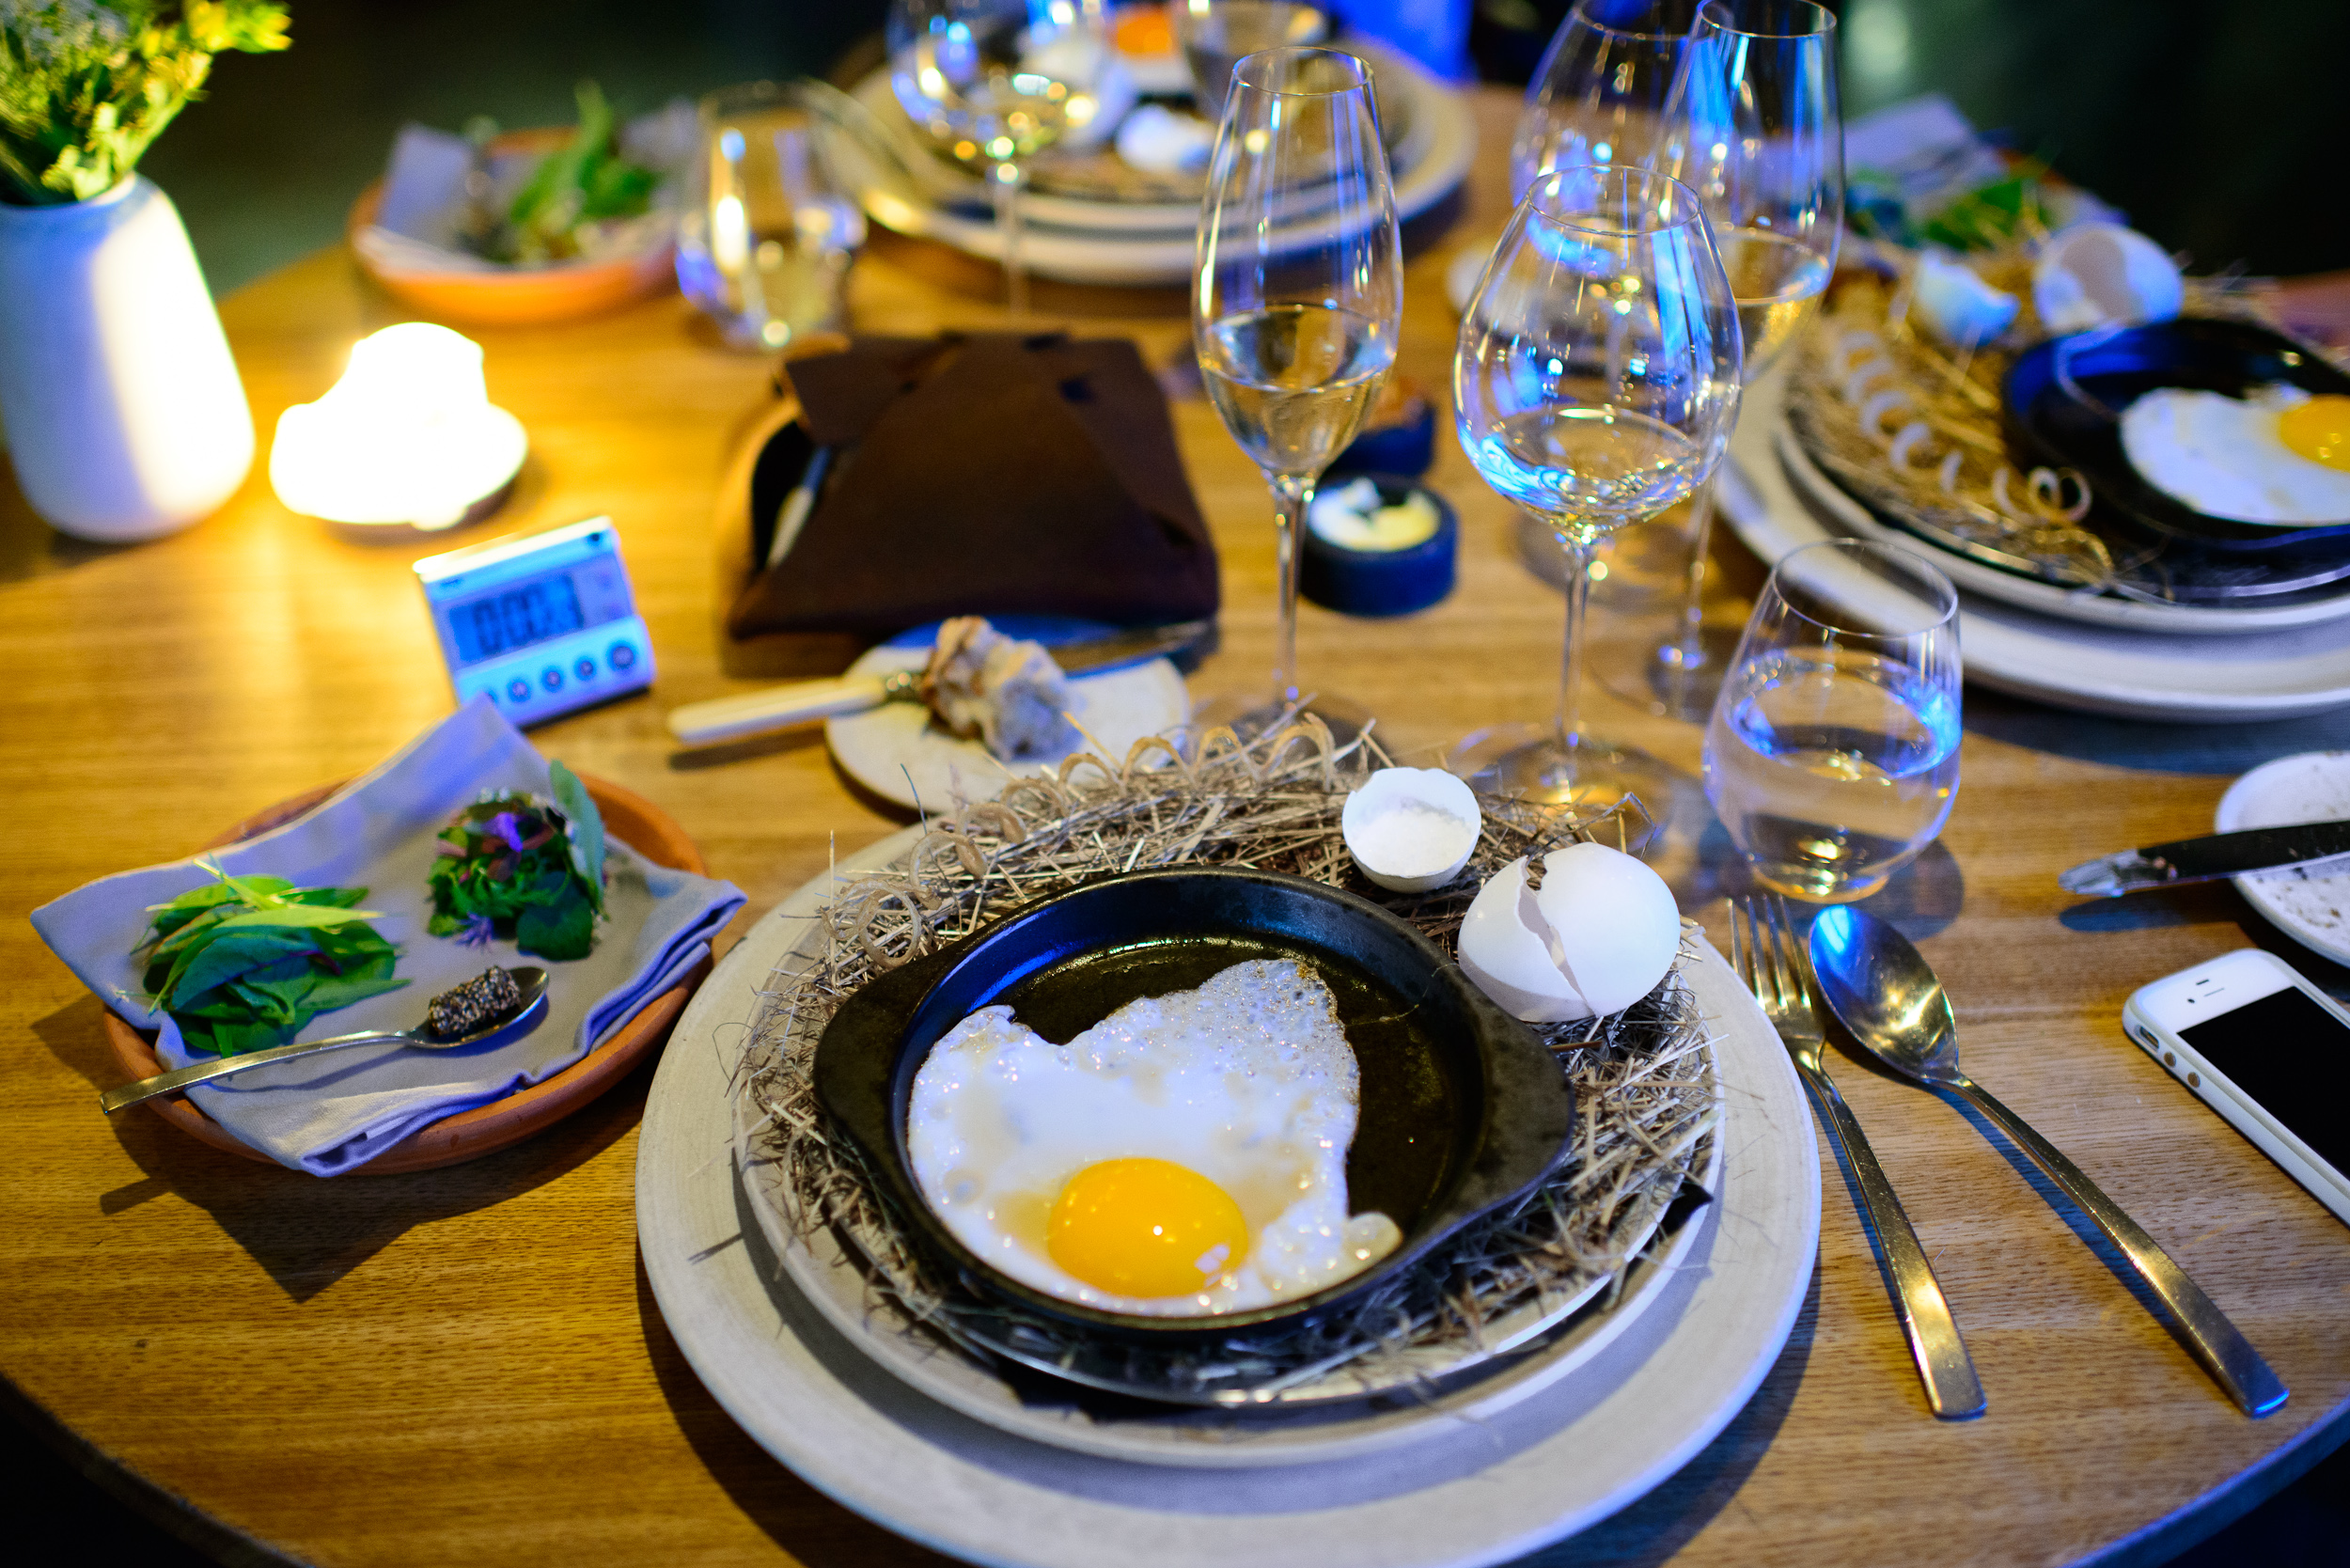 26th Course: Egg yolk and herbs - duck egg frying at the table